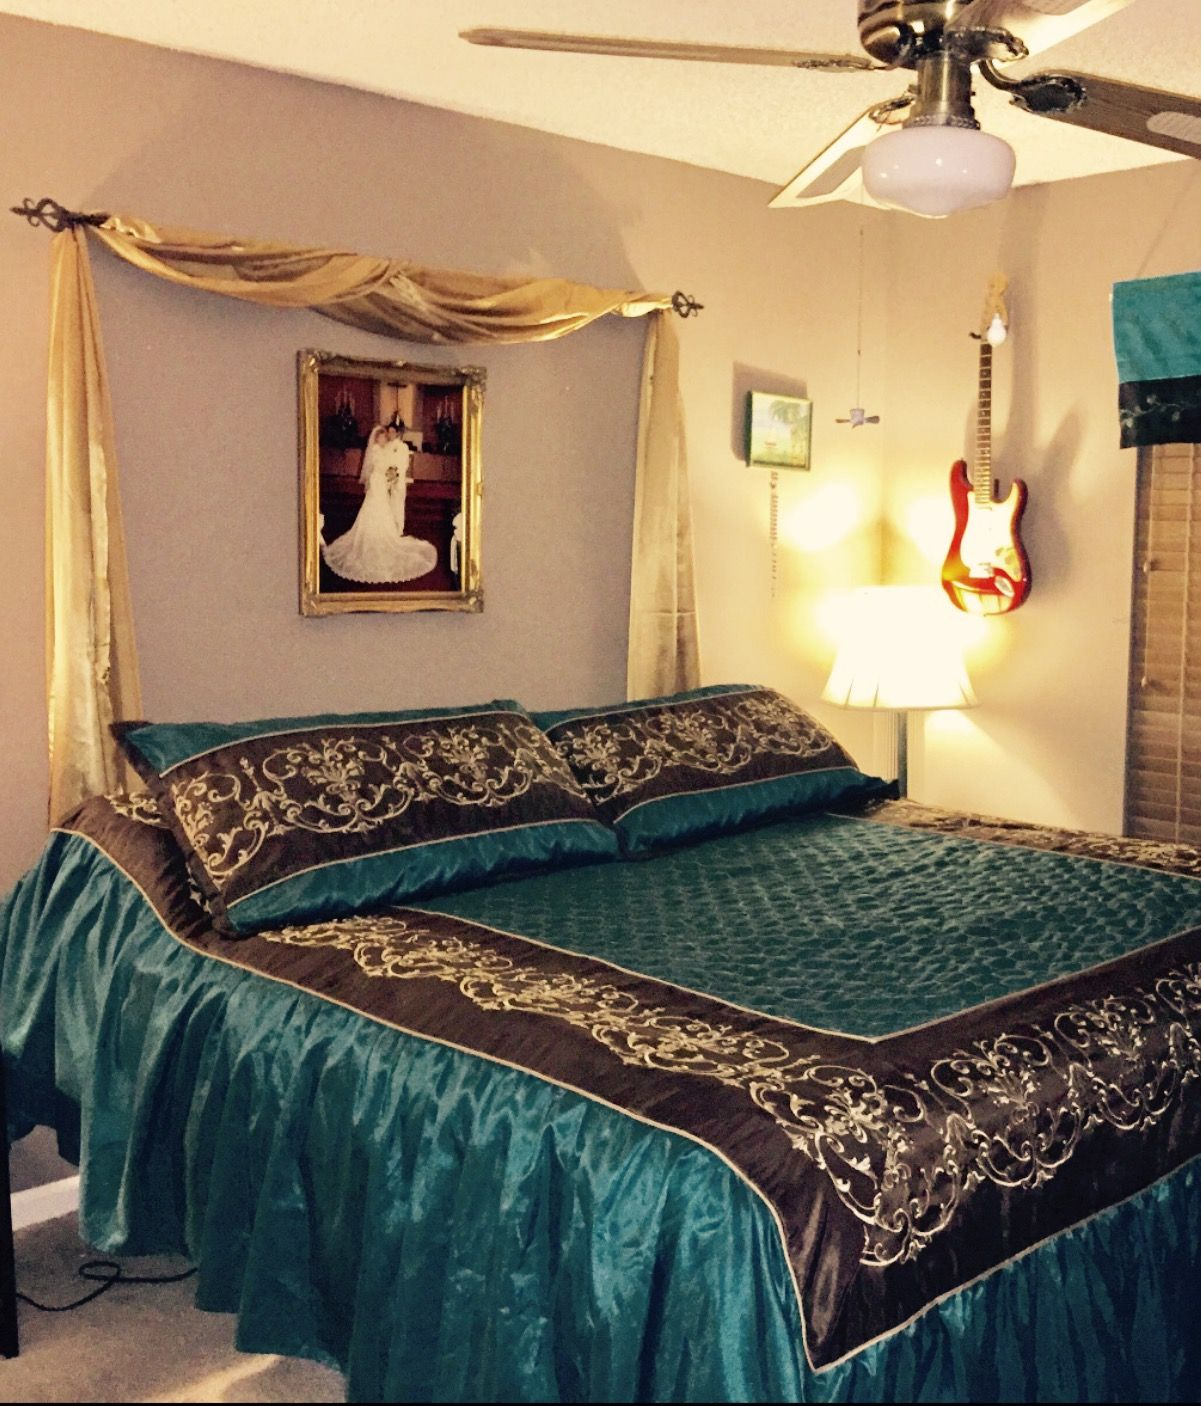 Add A Curtain Rod Over Your Bed And Drape A Scarf Over It For A